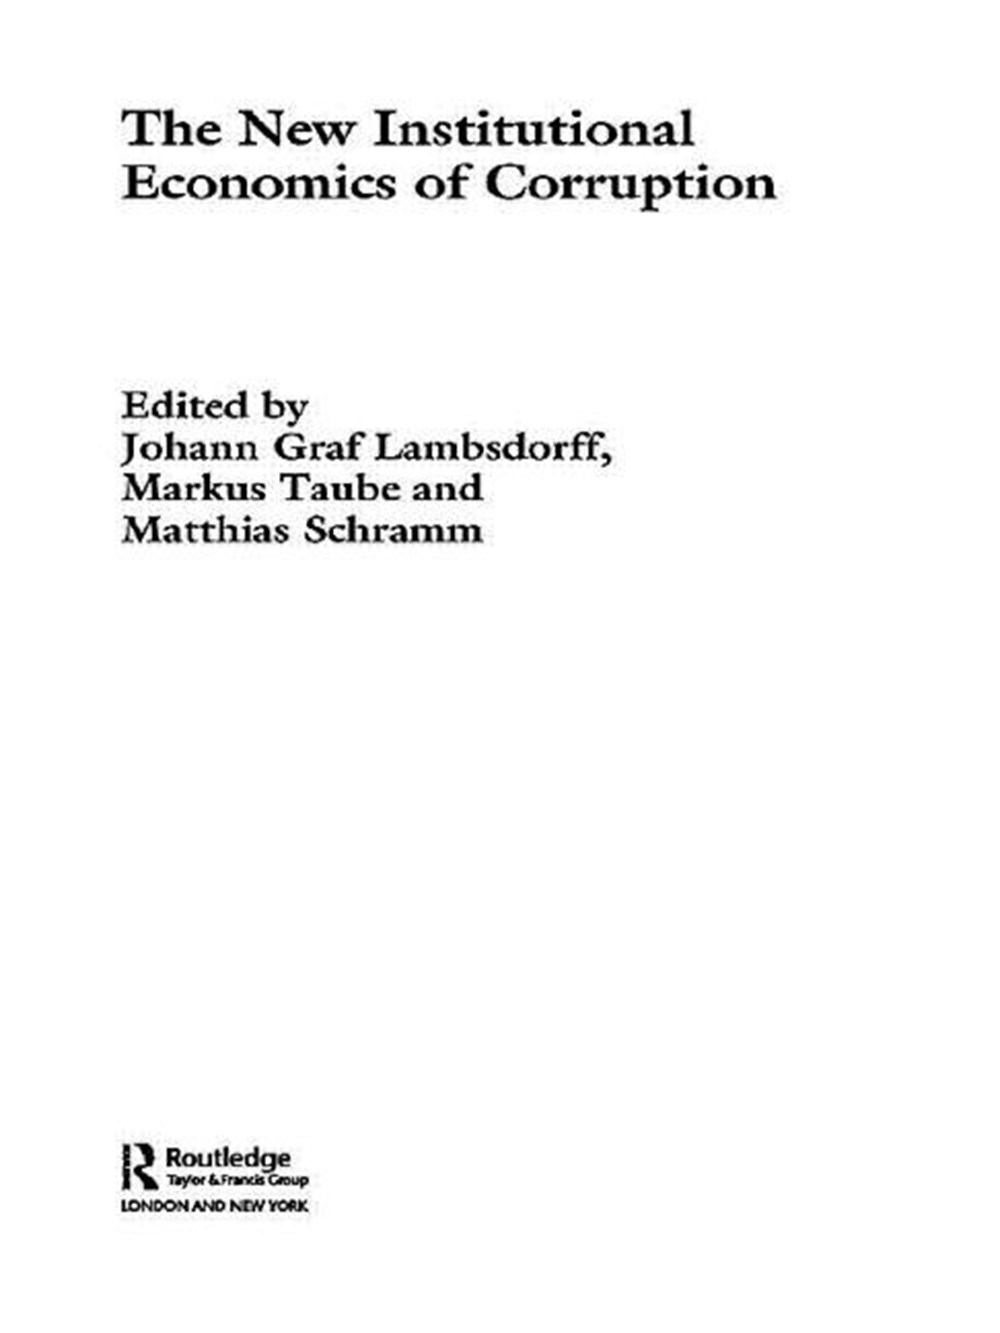 New Institutional Economics of Corruption